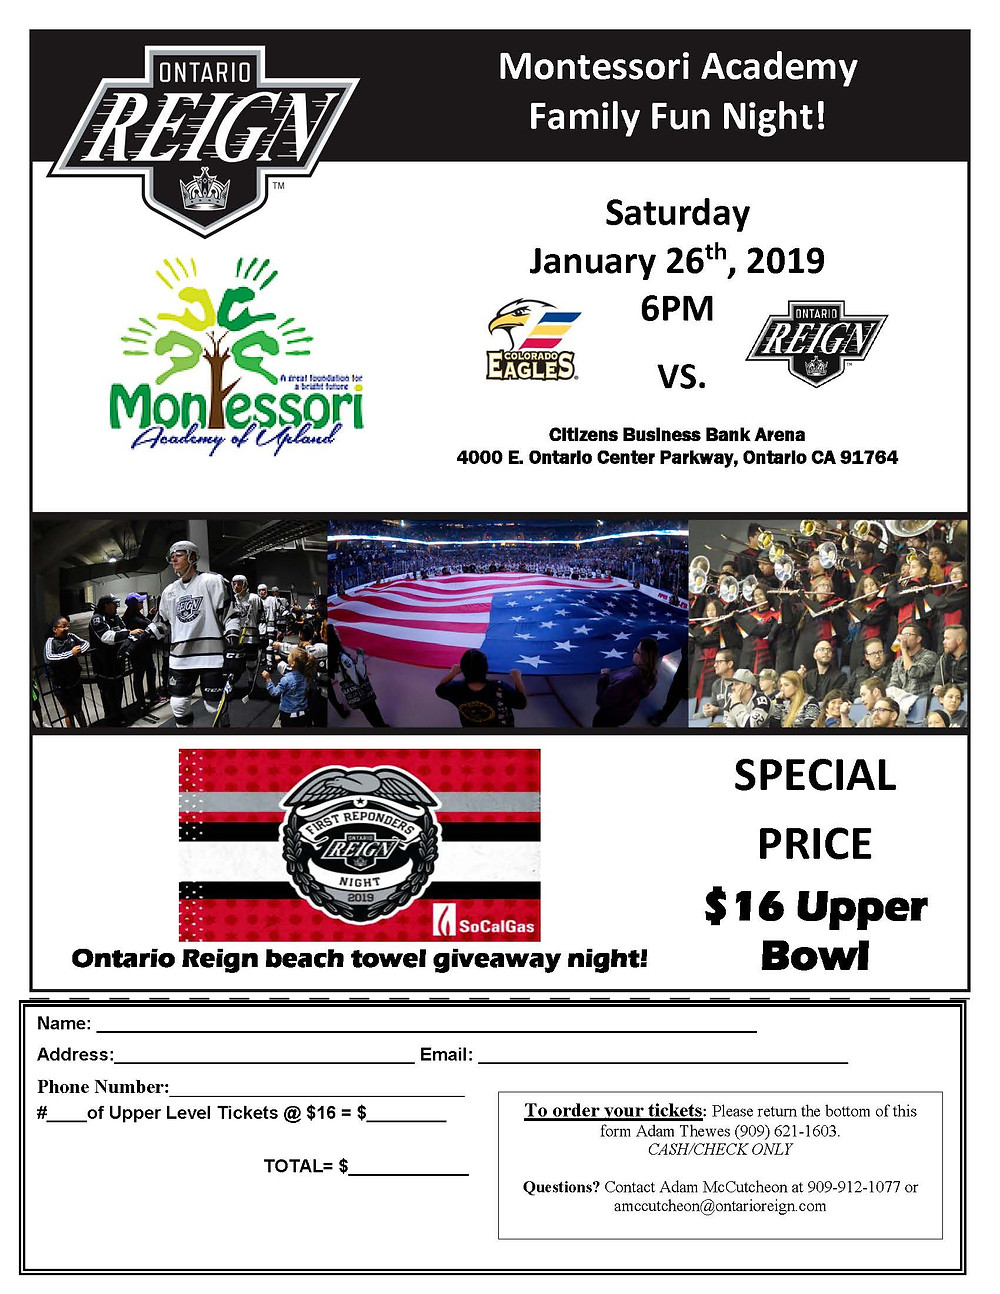 Community Nights are a great time to meet other families in our community. We hope that you can make it out to the Ontario Reign hockey game on Saturday, January 26th at 6pm.